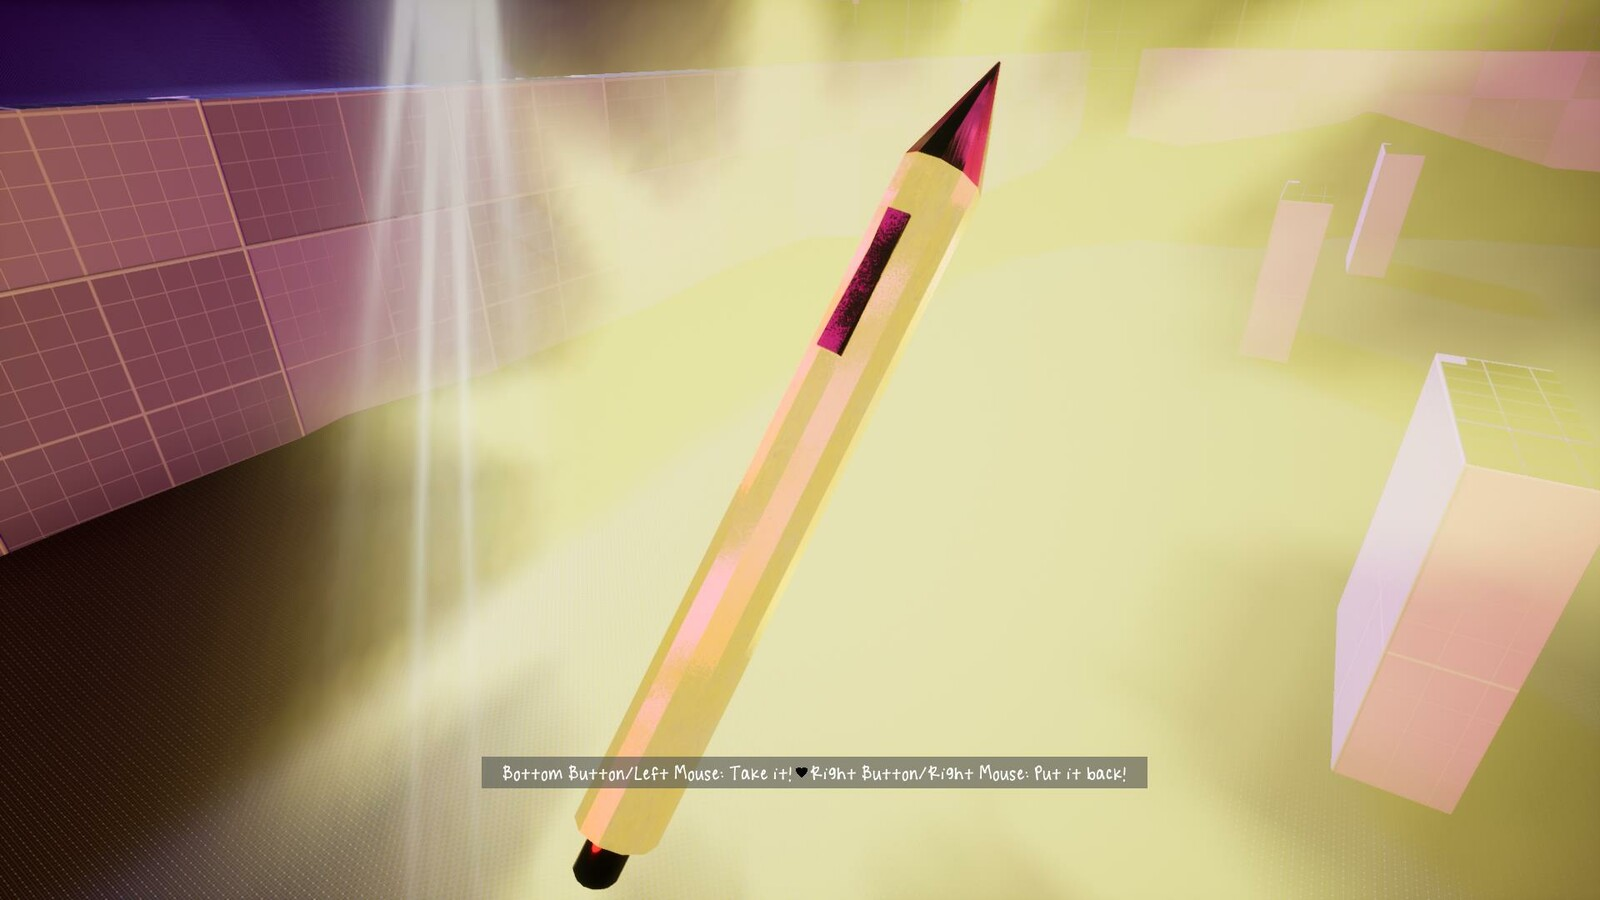 The Wacom tablet pen (called Golden Stylus in game), this activates the Wacom stations and unlocks the hidden level art